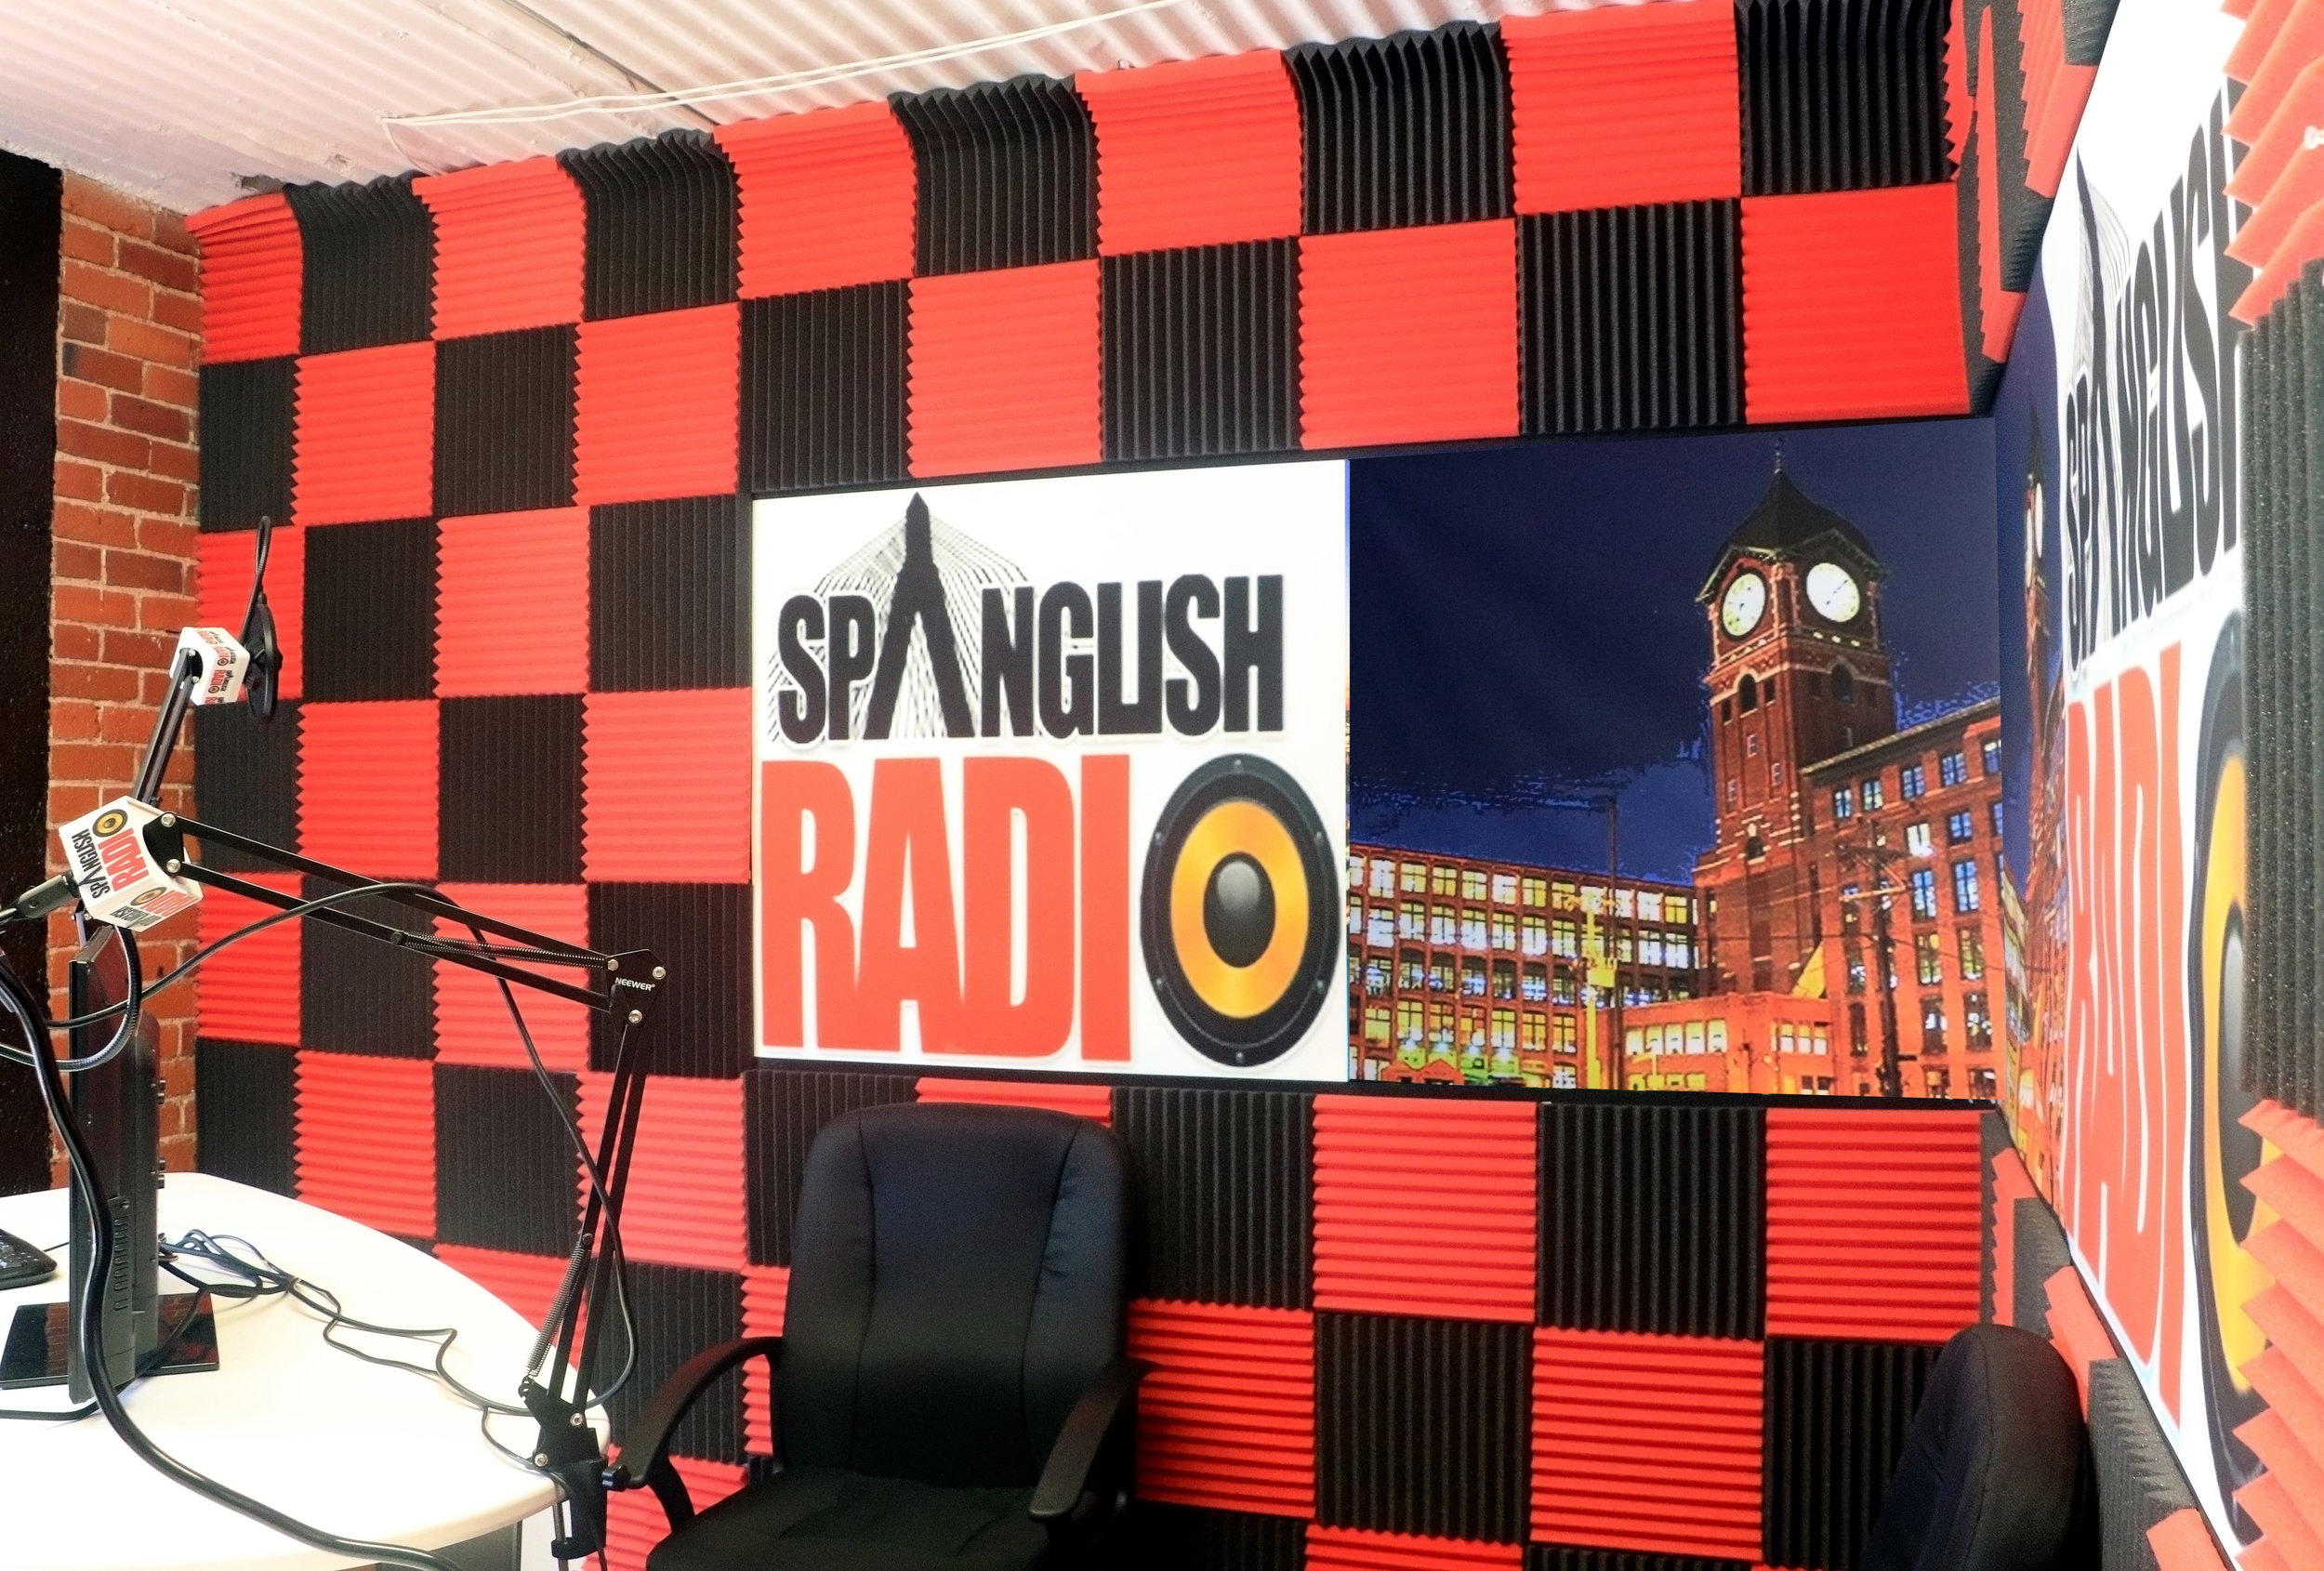 Spanglish Radio Station, in residence at Launch CoWorking in Riverwalk Lawrence